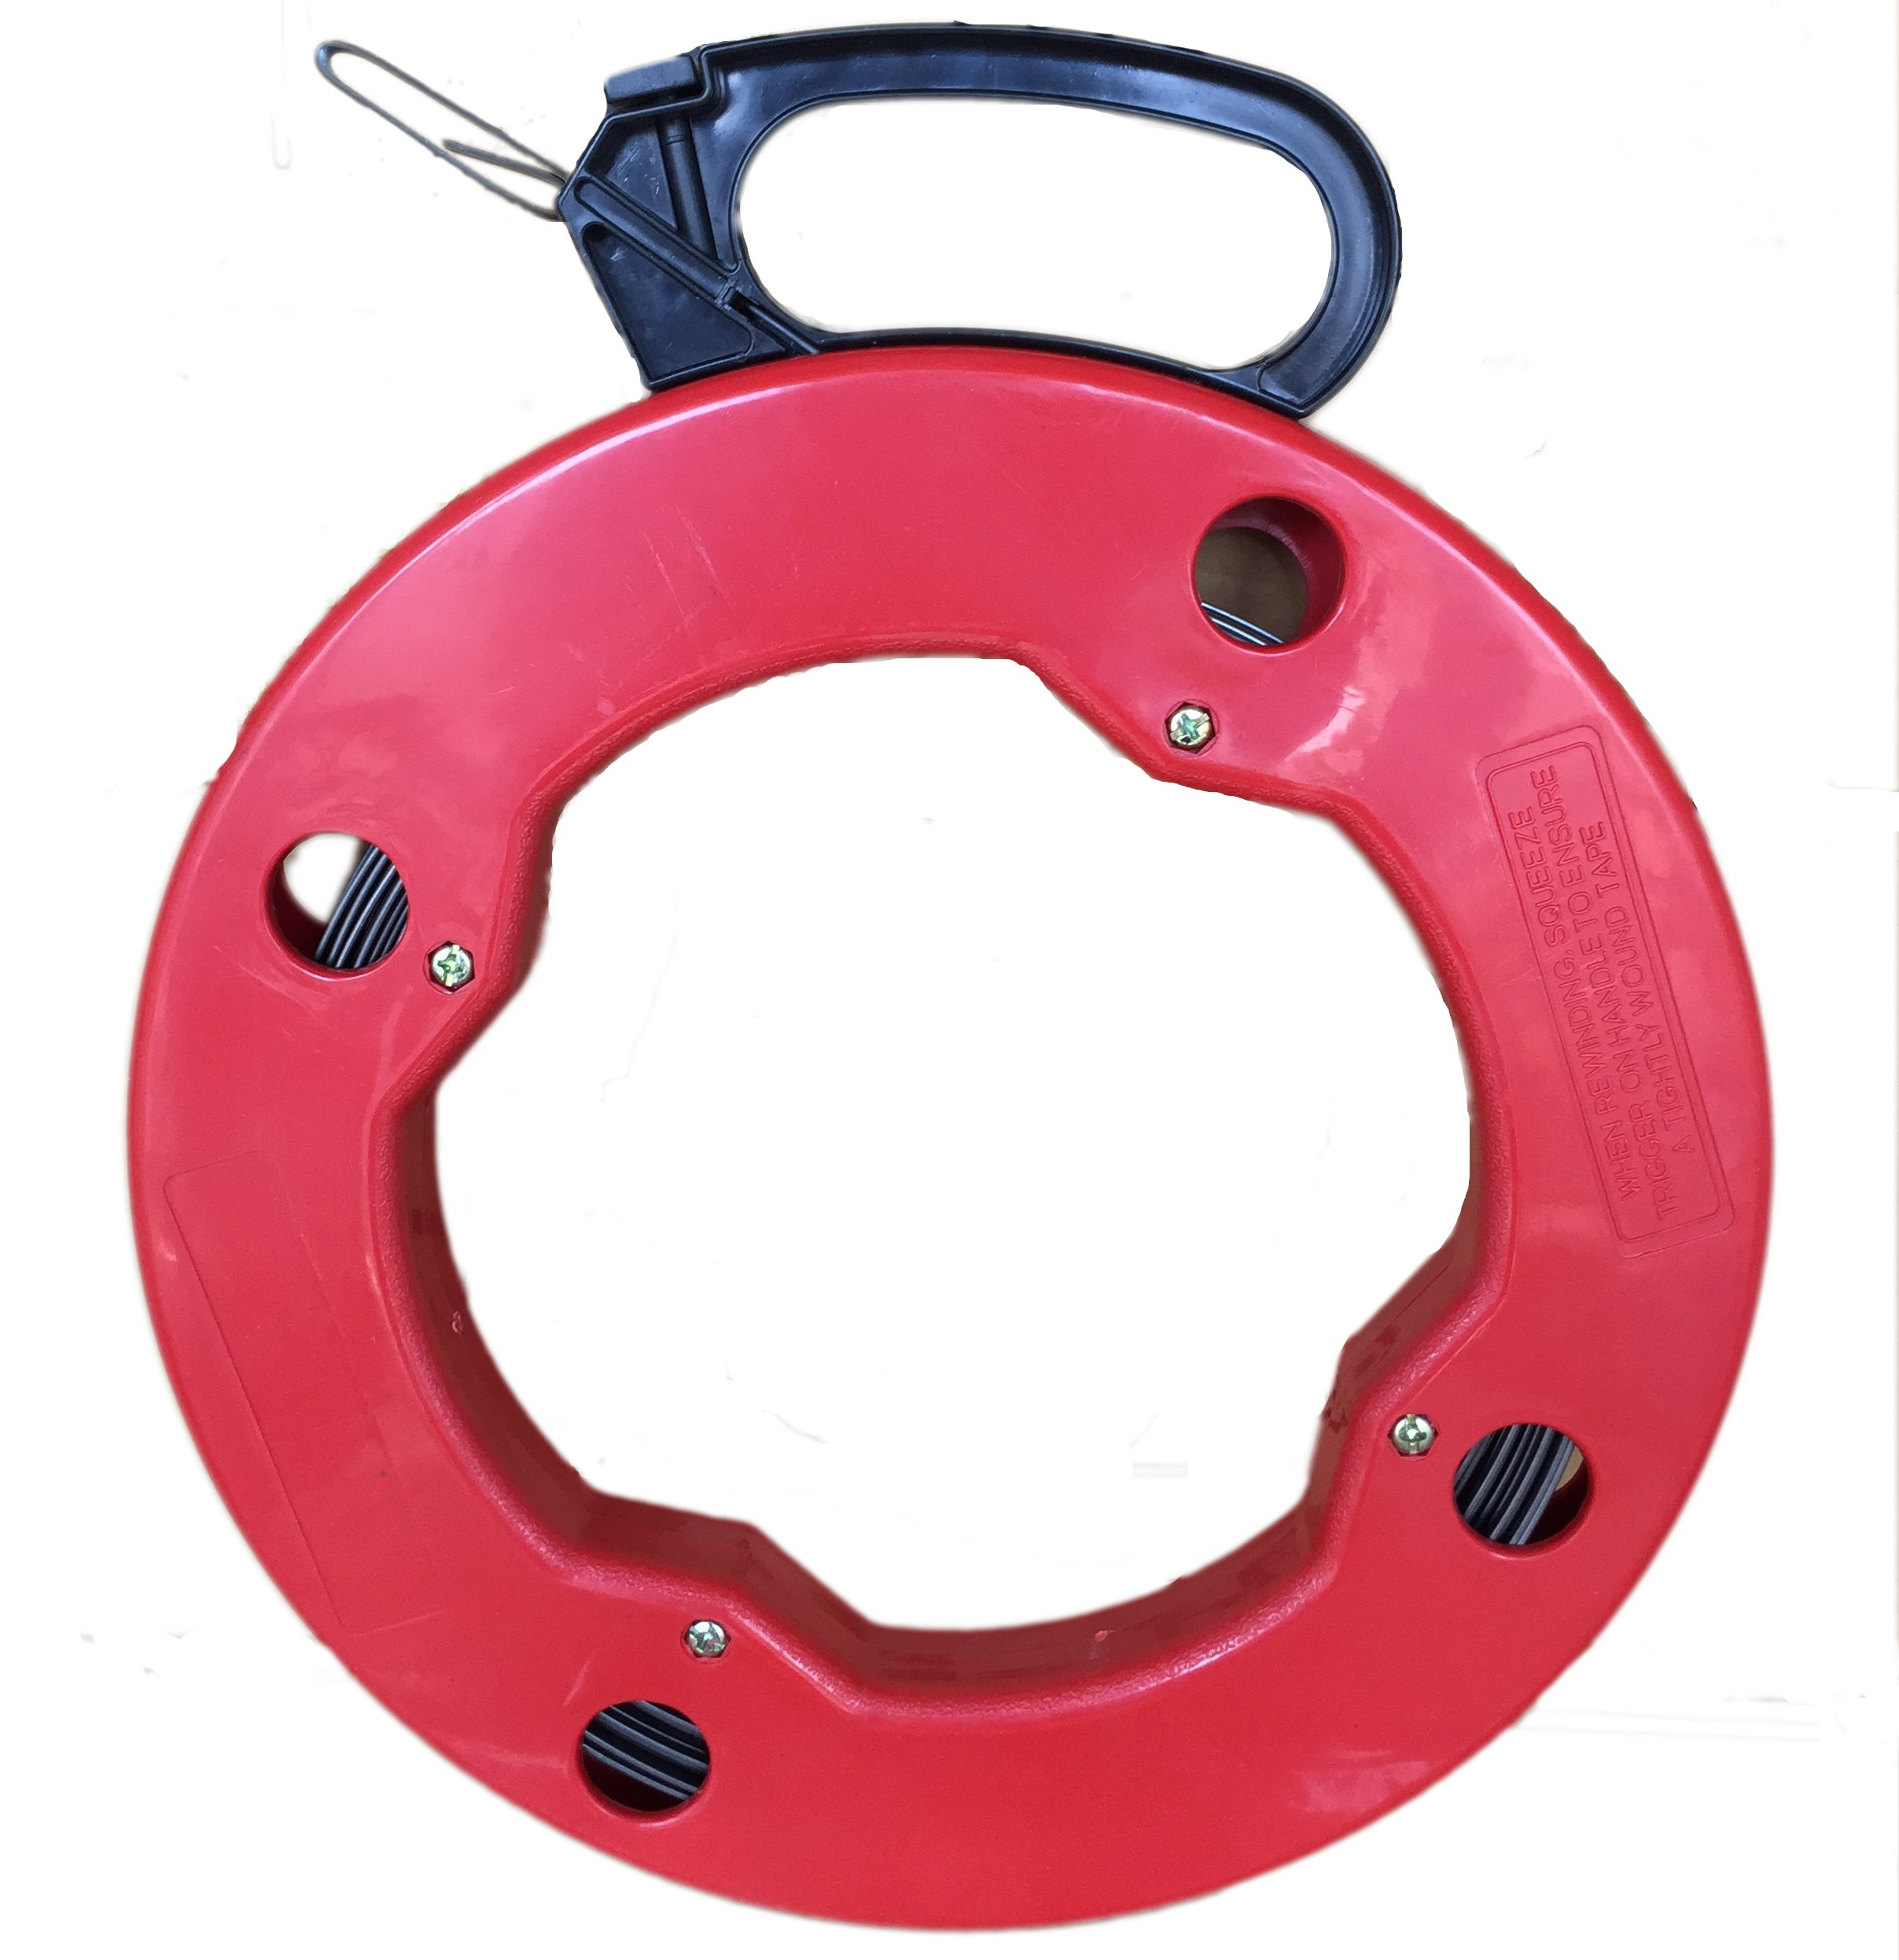 ezitown Cable Puller Steel Wire Reusable Electrical Fish Tape Reel Depth Finder with High Impact Case 100ft Red Black Flexible Metal Leader 3mmx1.5mm 3/25 x 1/15 by ezitown (Image #1)